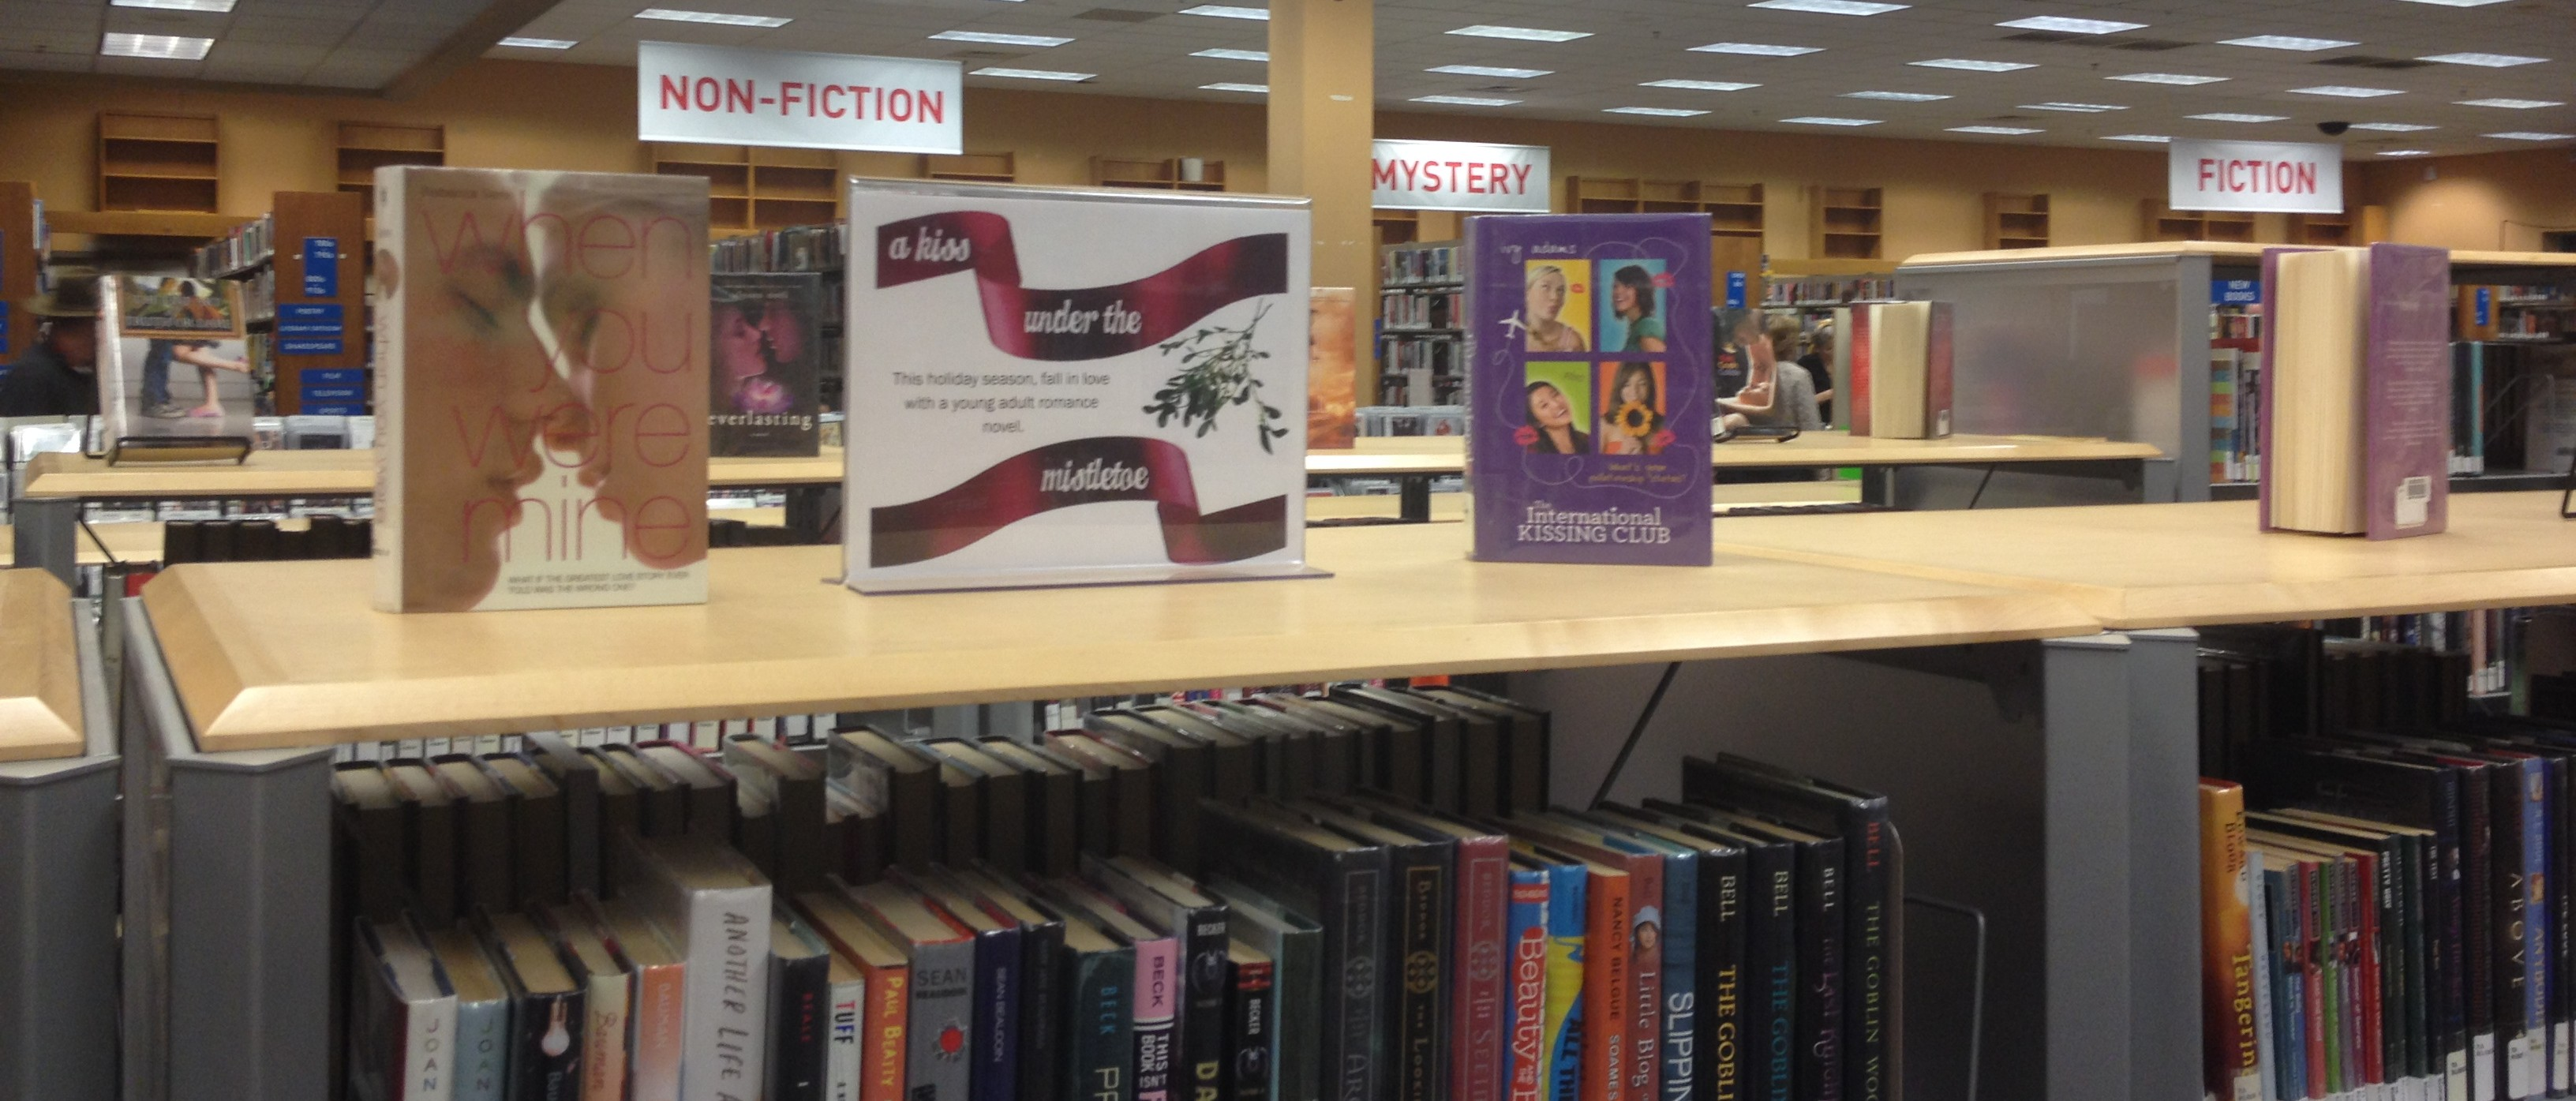 Library Programs And Displays Wrapped Up In Books